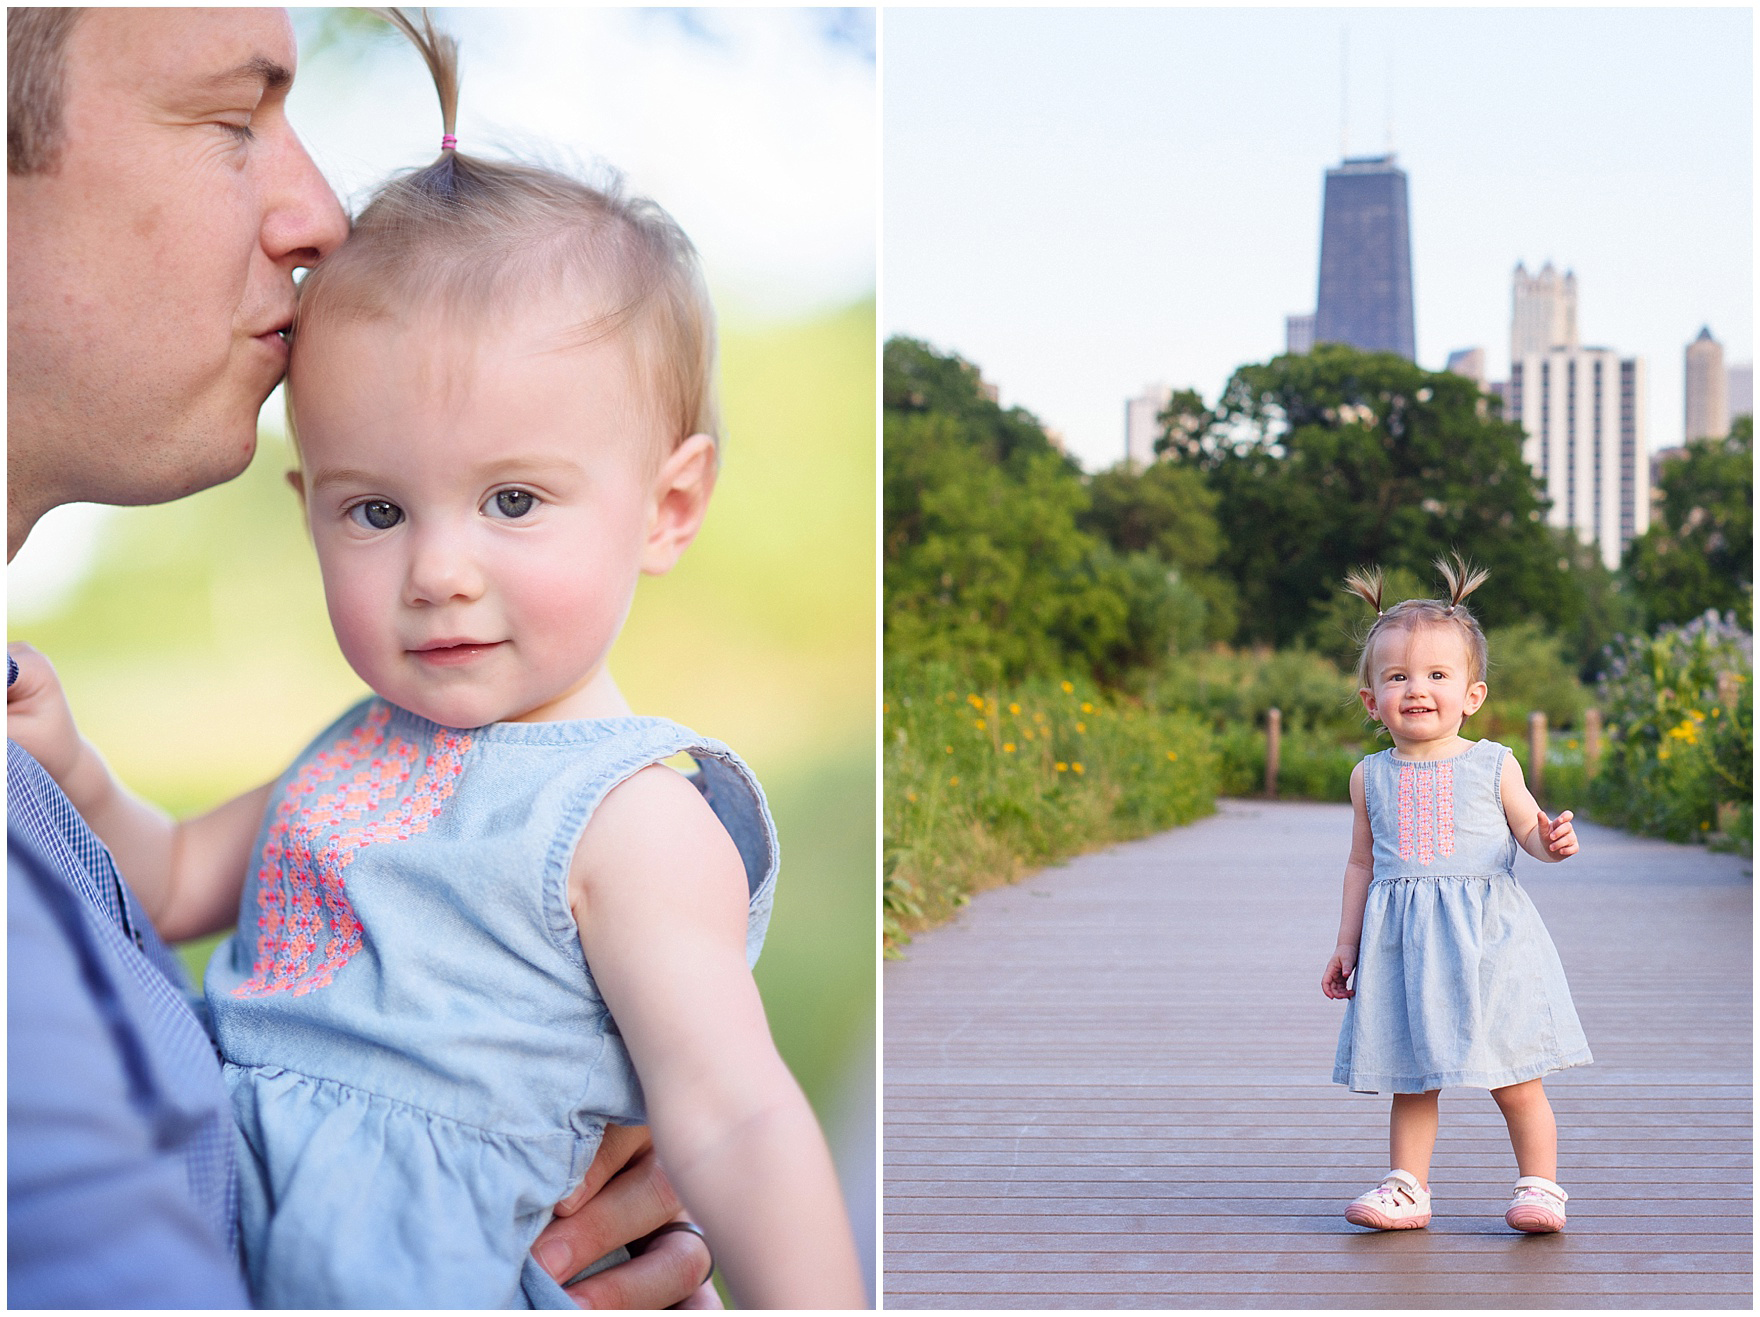 A dad kisses his baby girl during a Chicago Lincoln Park family photography session.